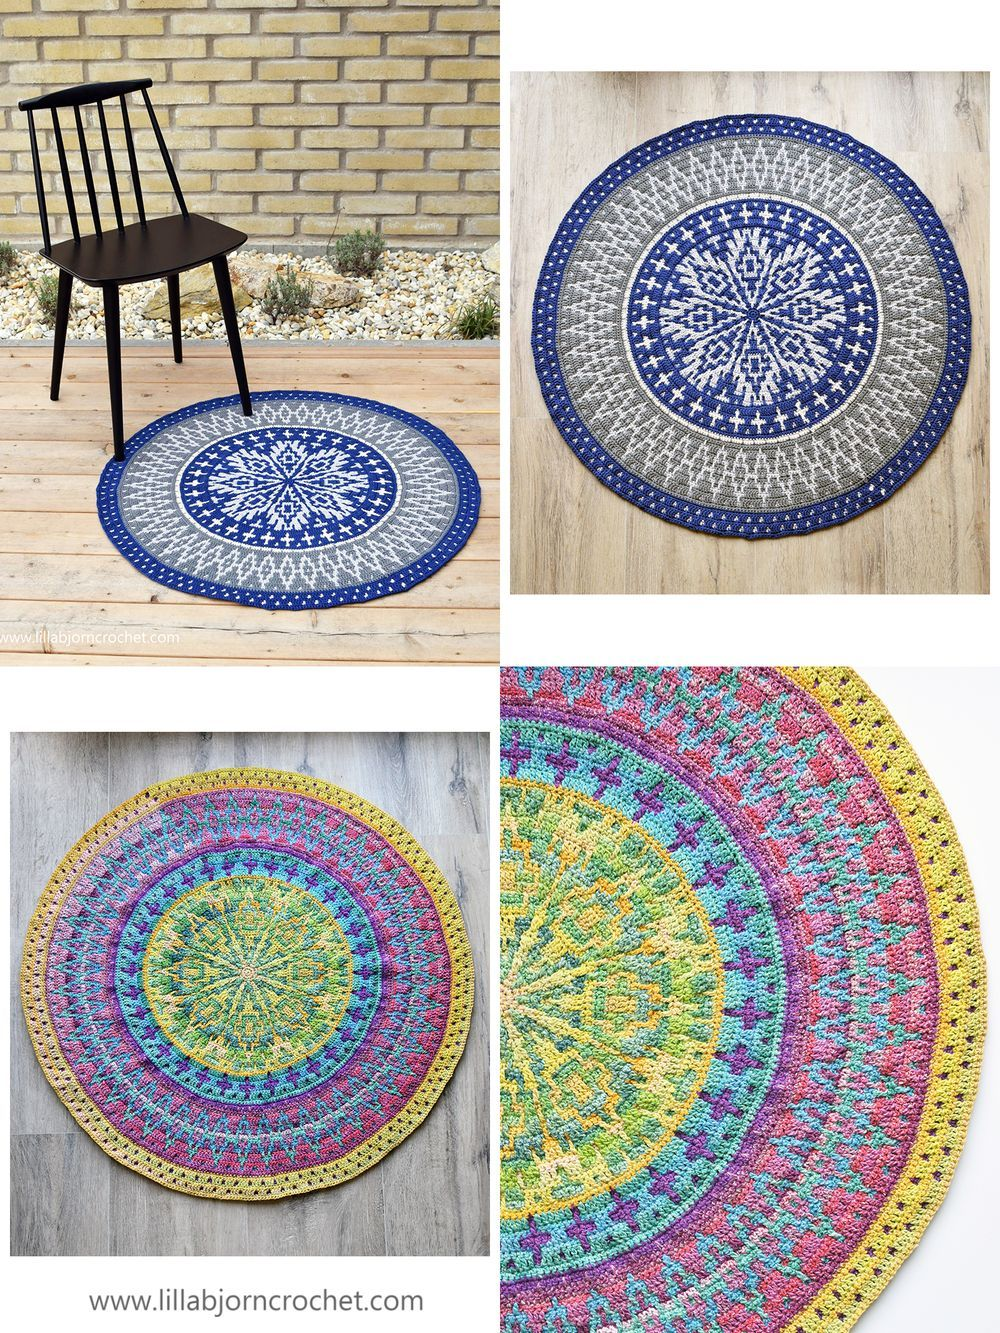 Crochet Pattern Ocean Time Mandala Rug The Pattern Uses Popular Mosaic Crochet With Only Simple St In 2020 Crochet Mandala Pattern Mandala Rug Crochet Rug Patterns